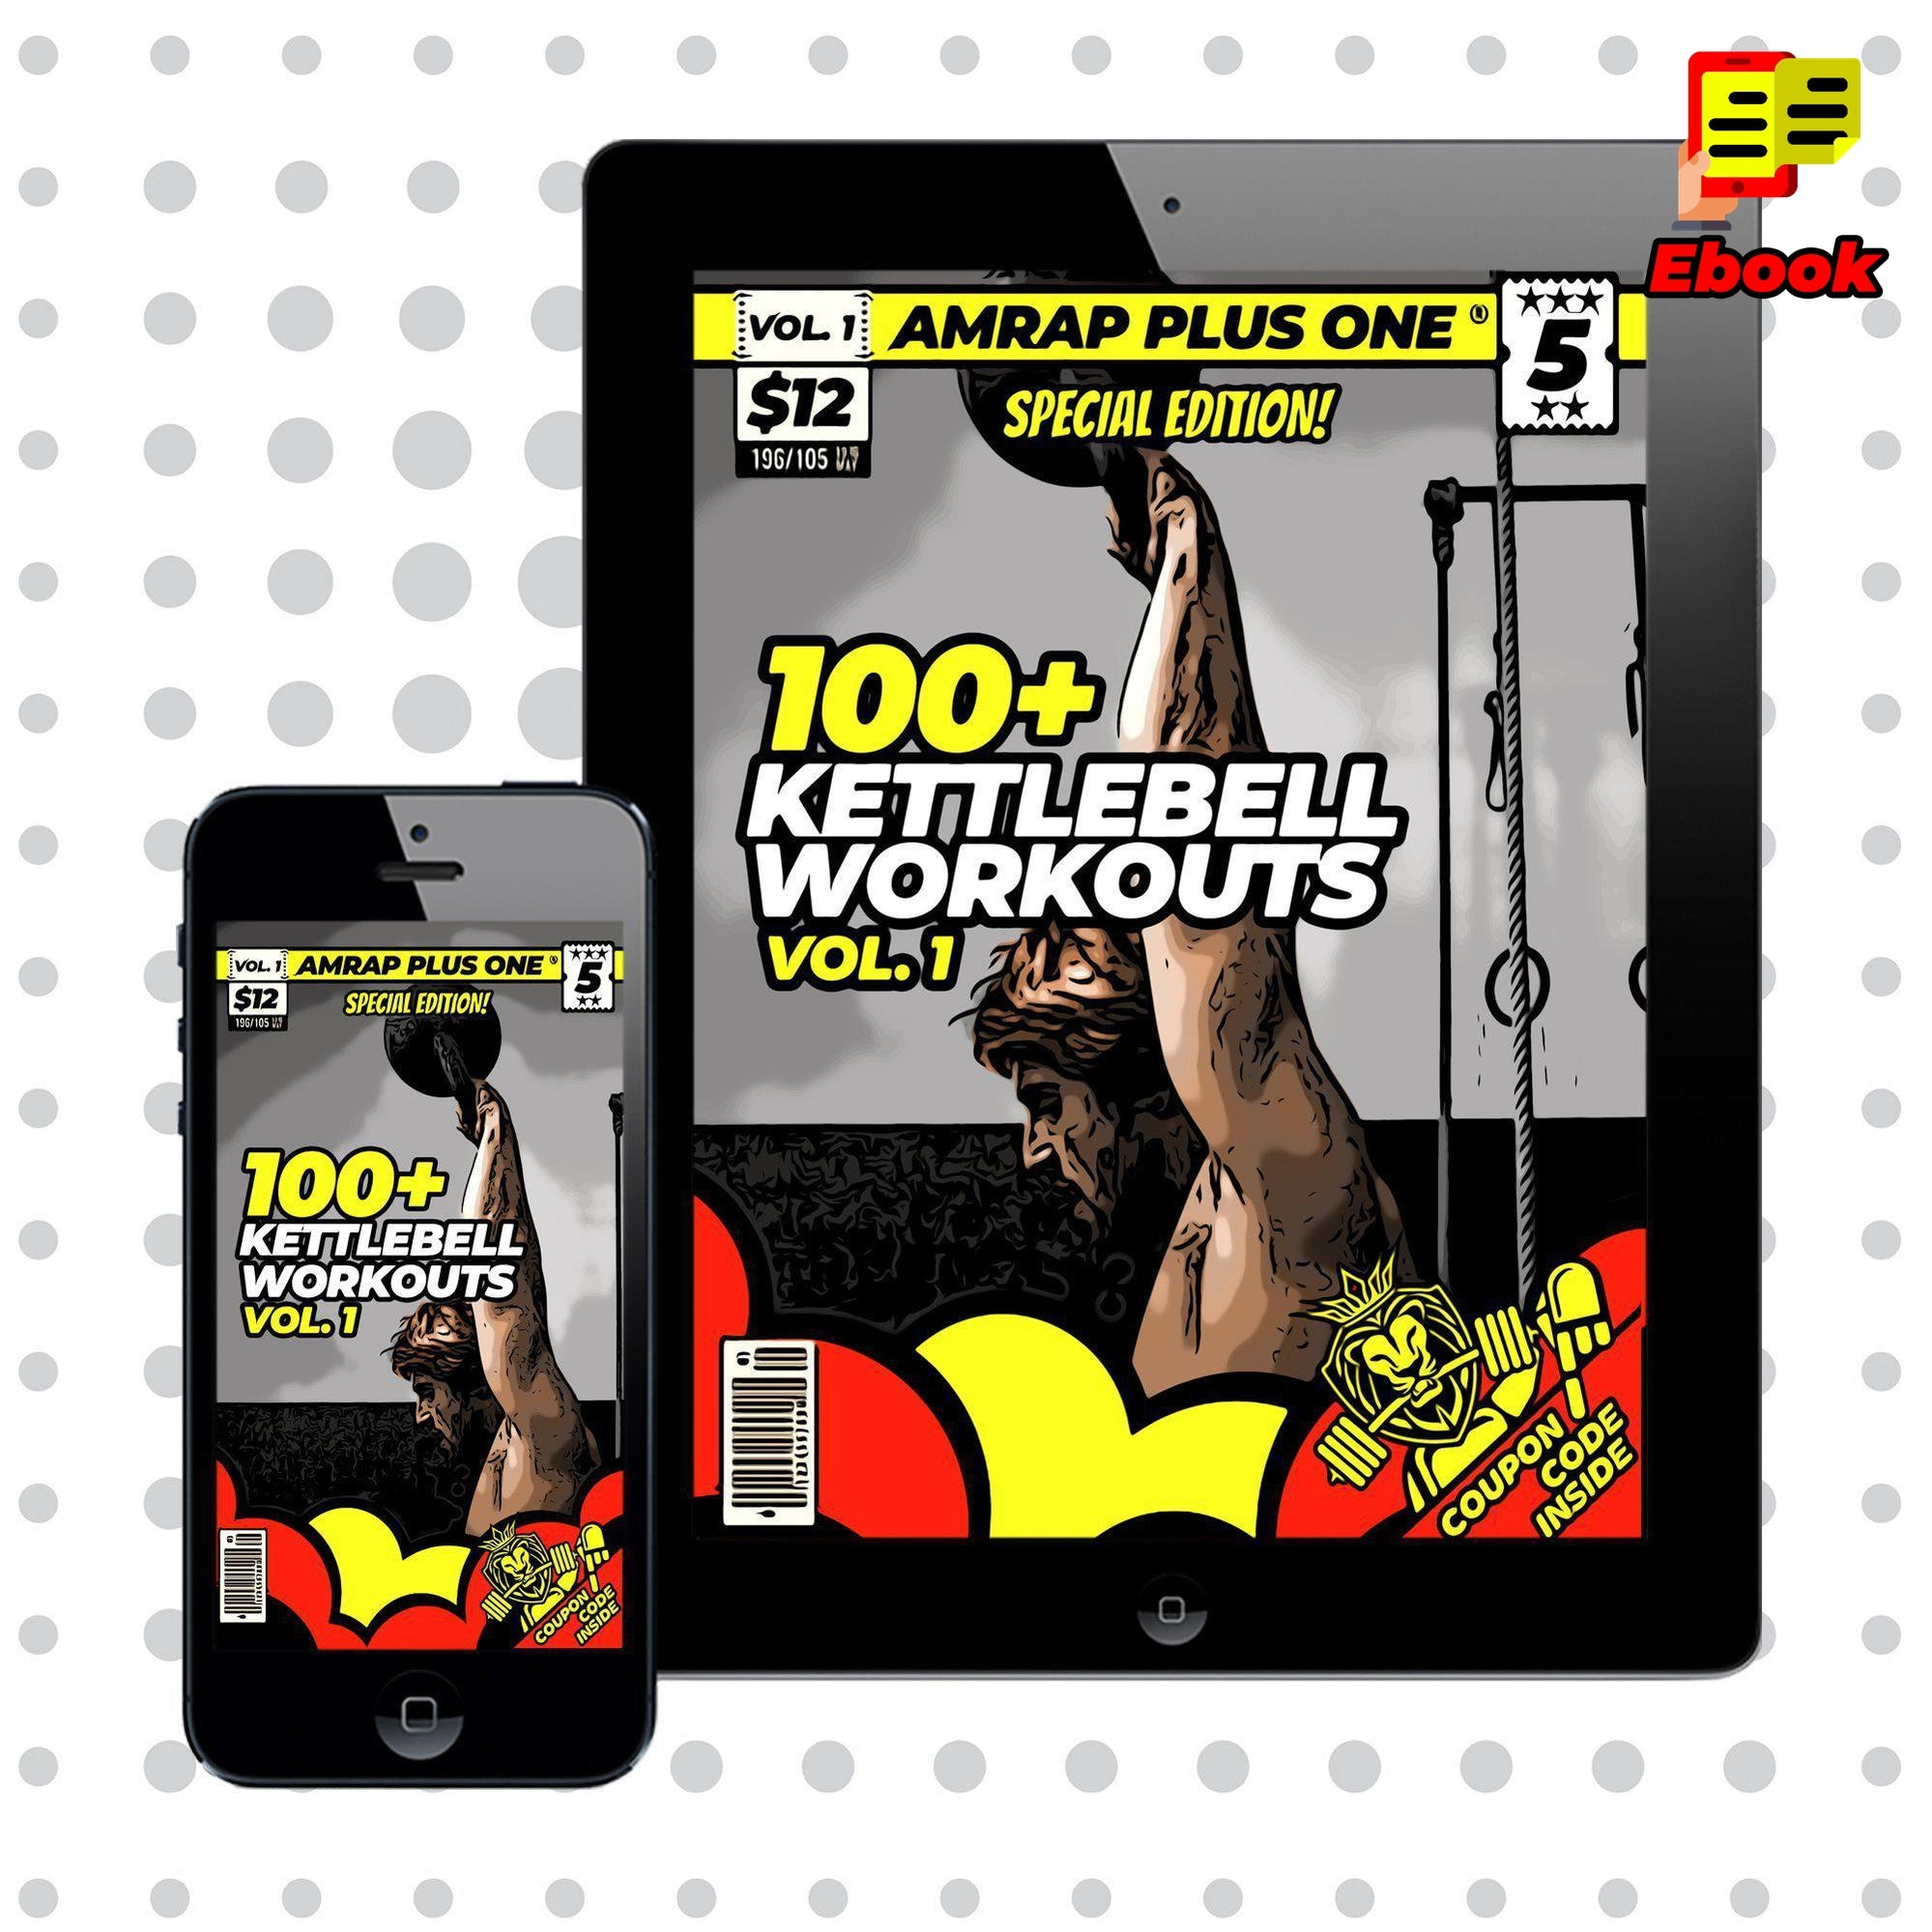 100+ Kettlebell Workouts Vol. 1 - AMRAP Plus One